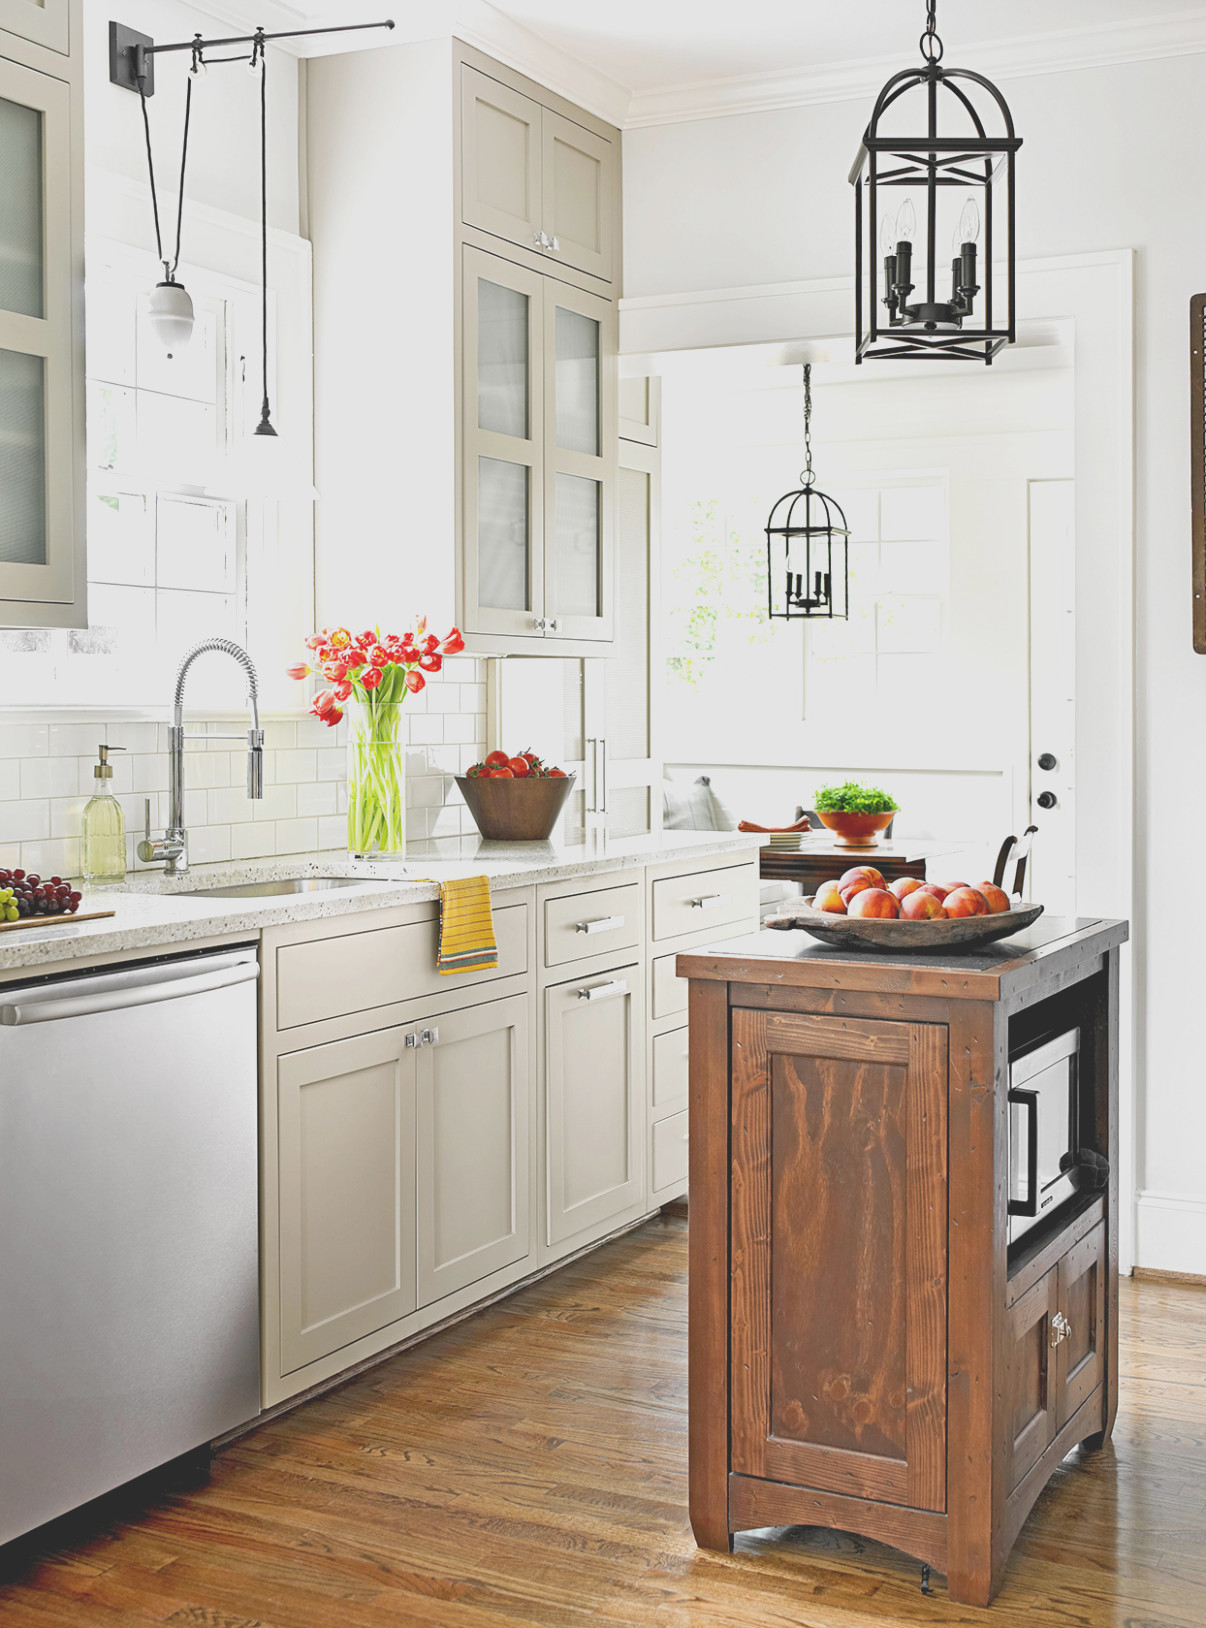 Best Kitchen Cabinet Color for Small Kitchen